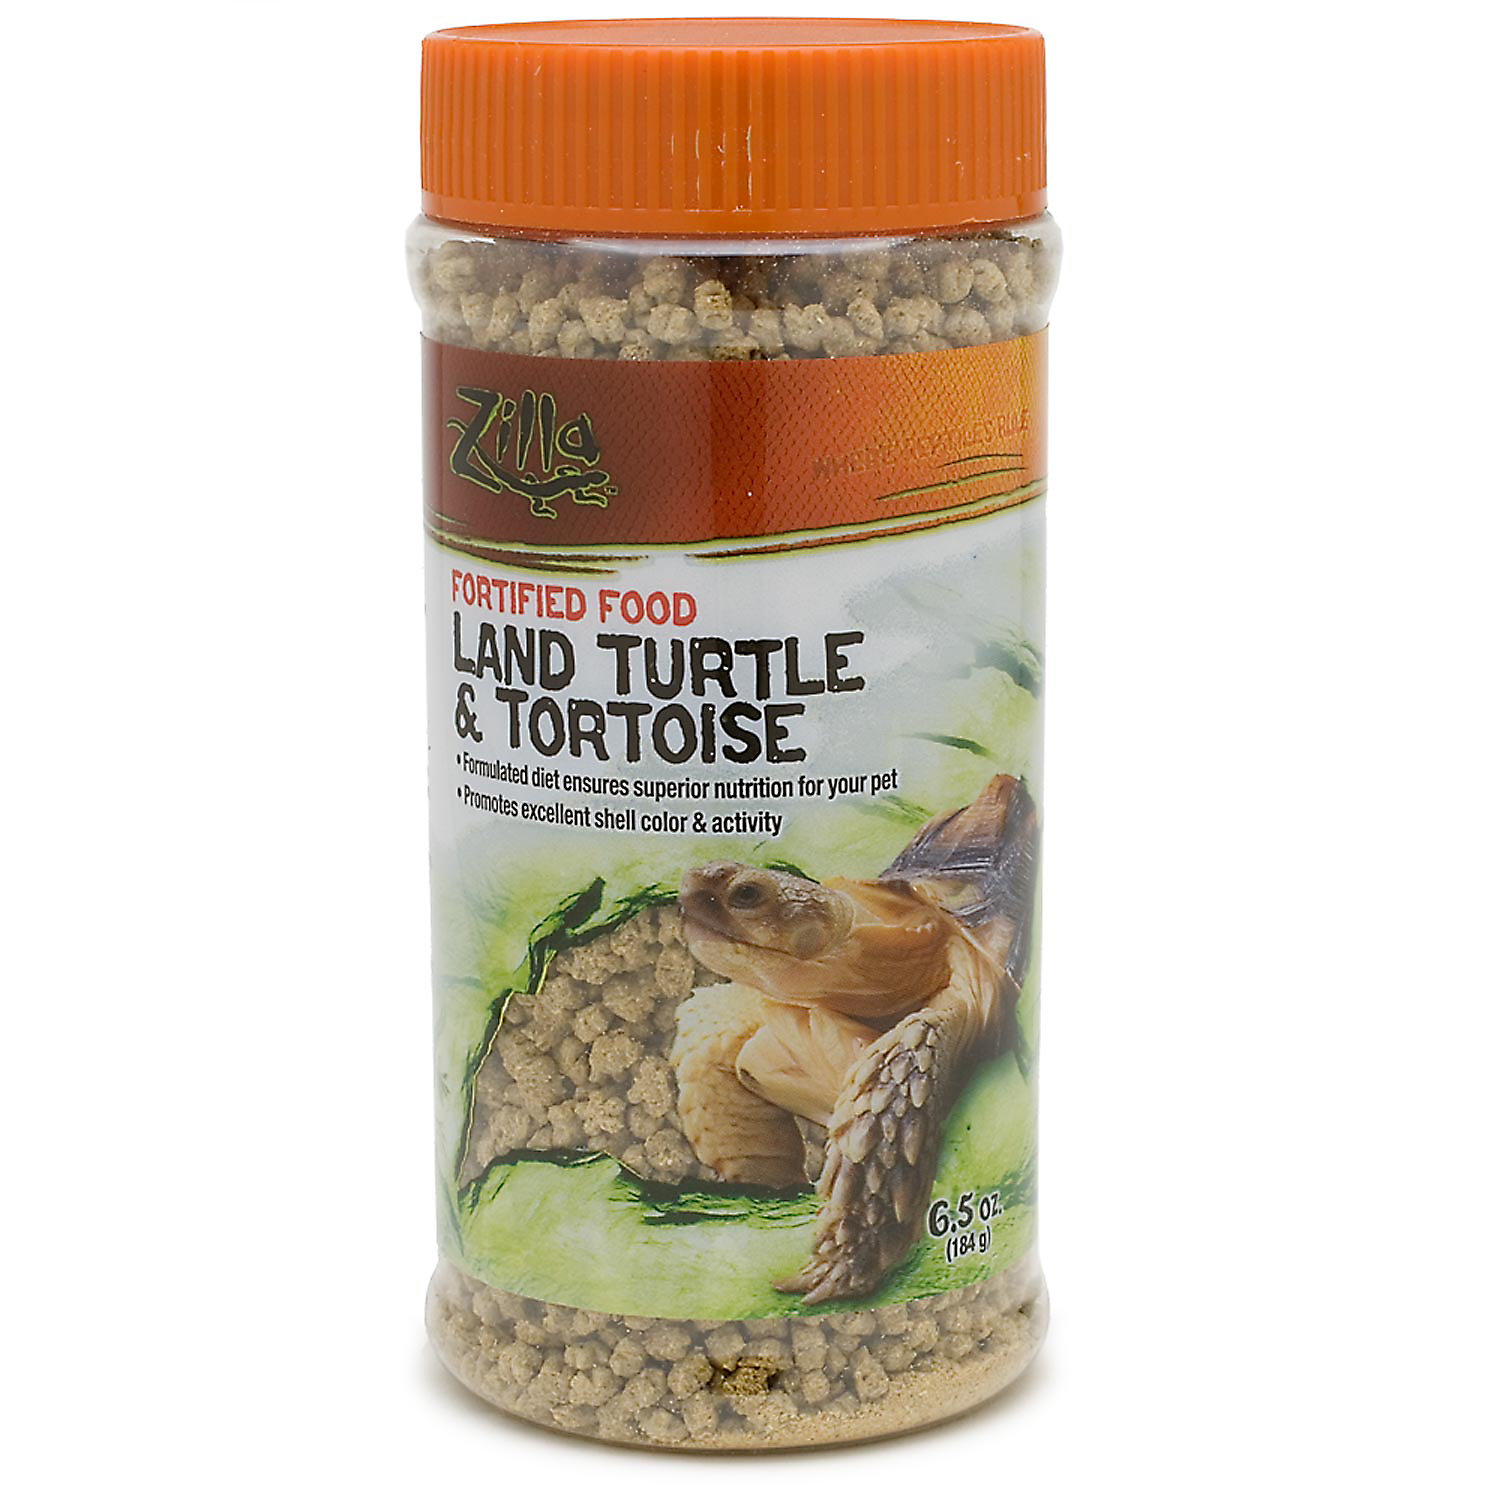 Zilla Land Turtle Tortoise Fortified Daily Food